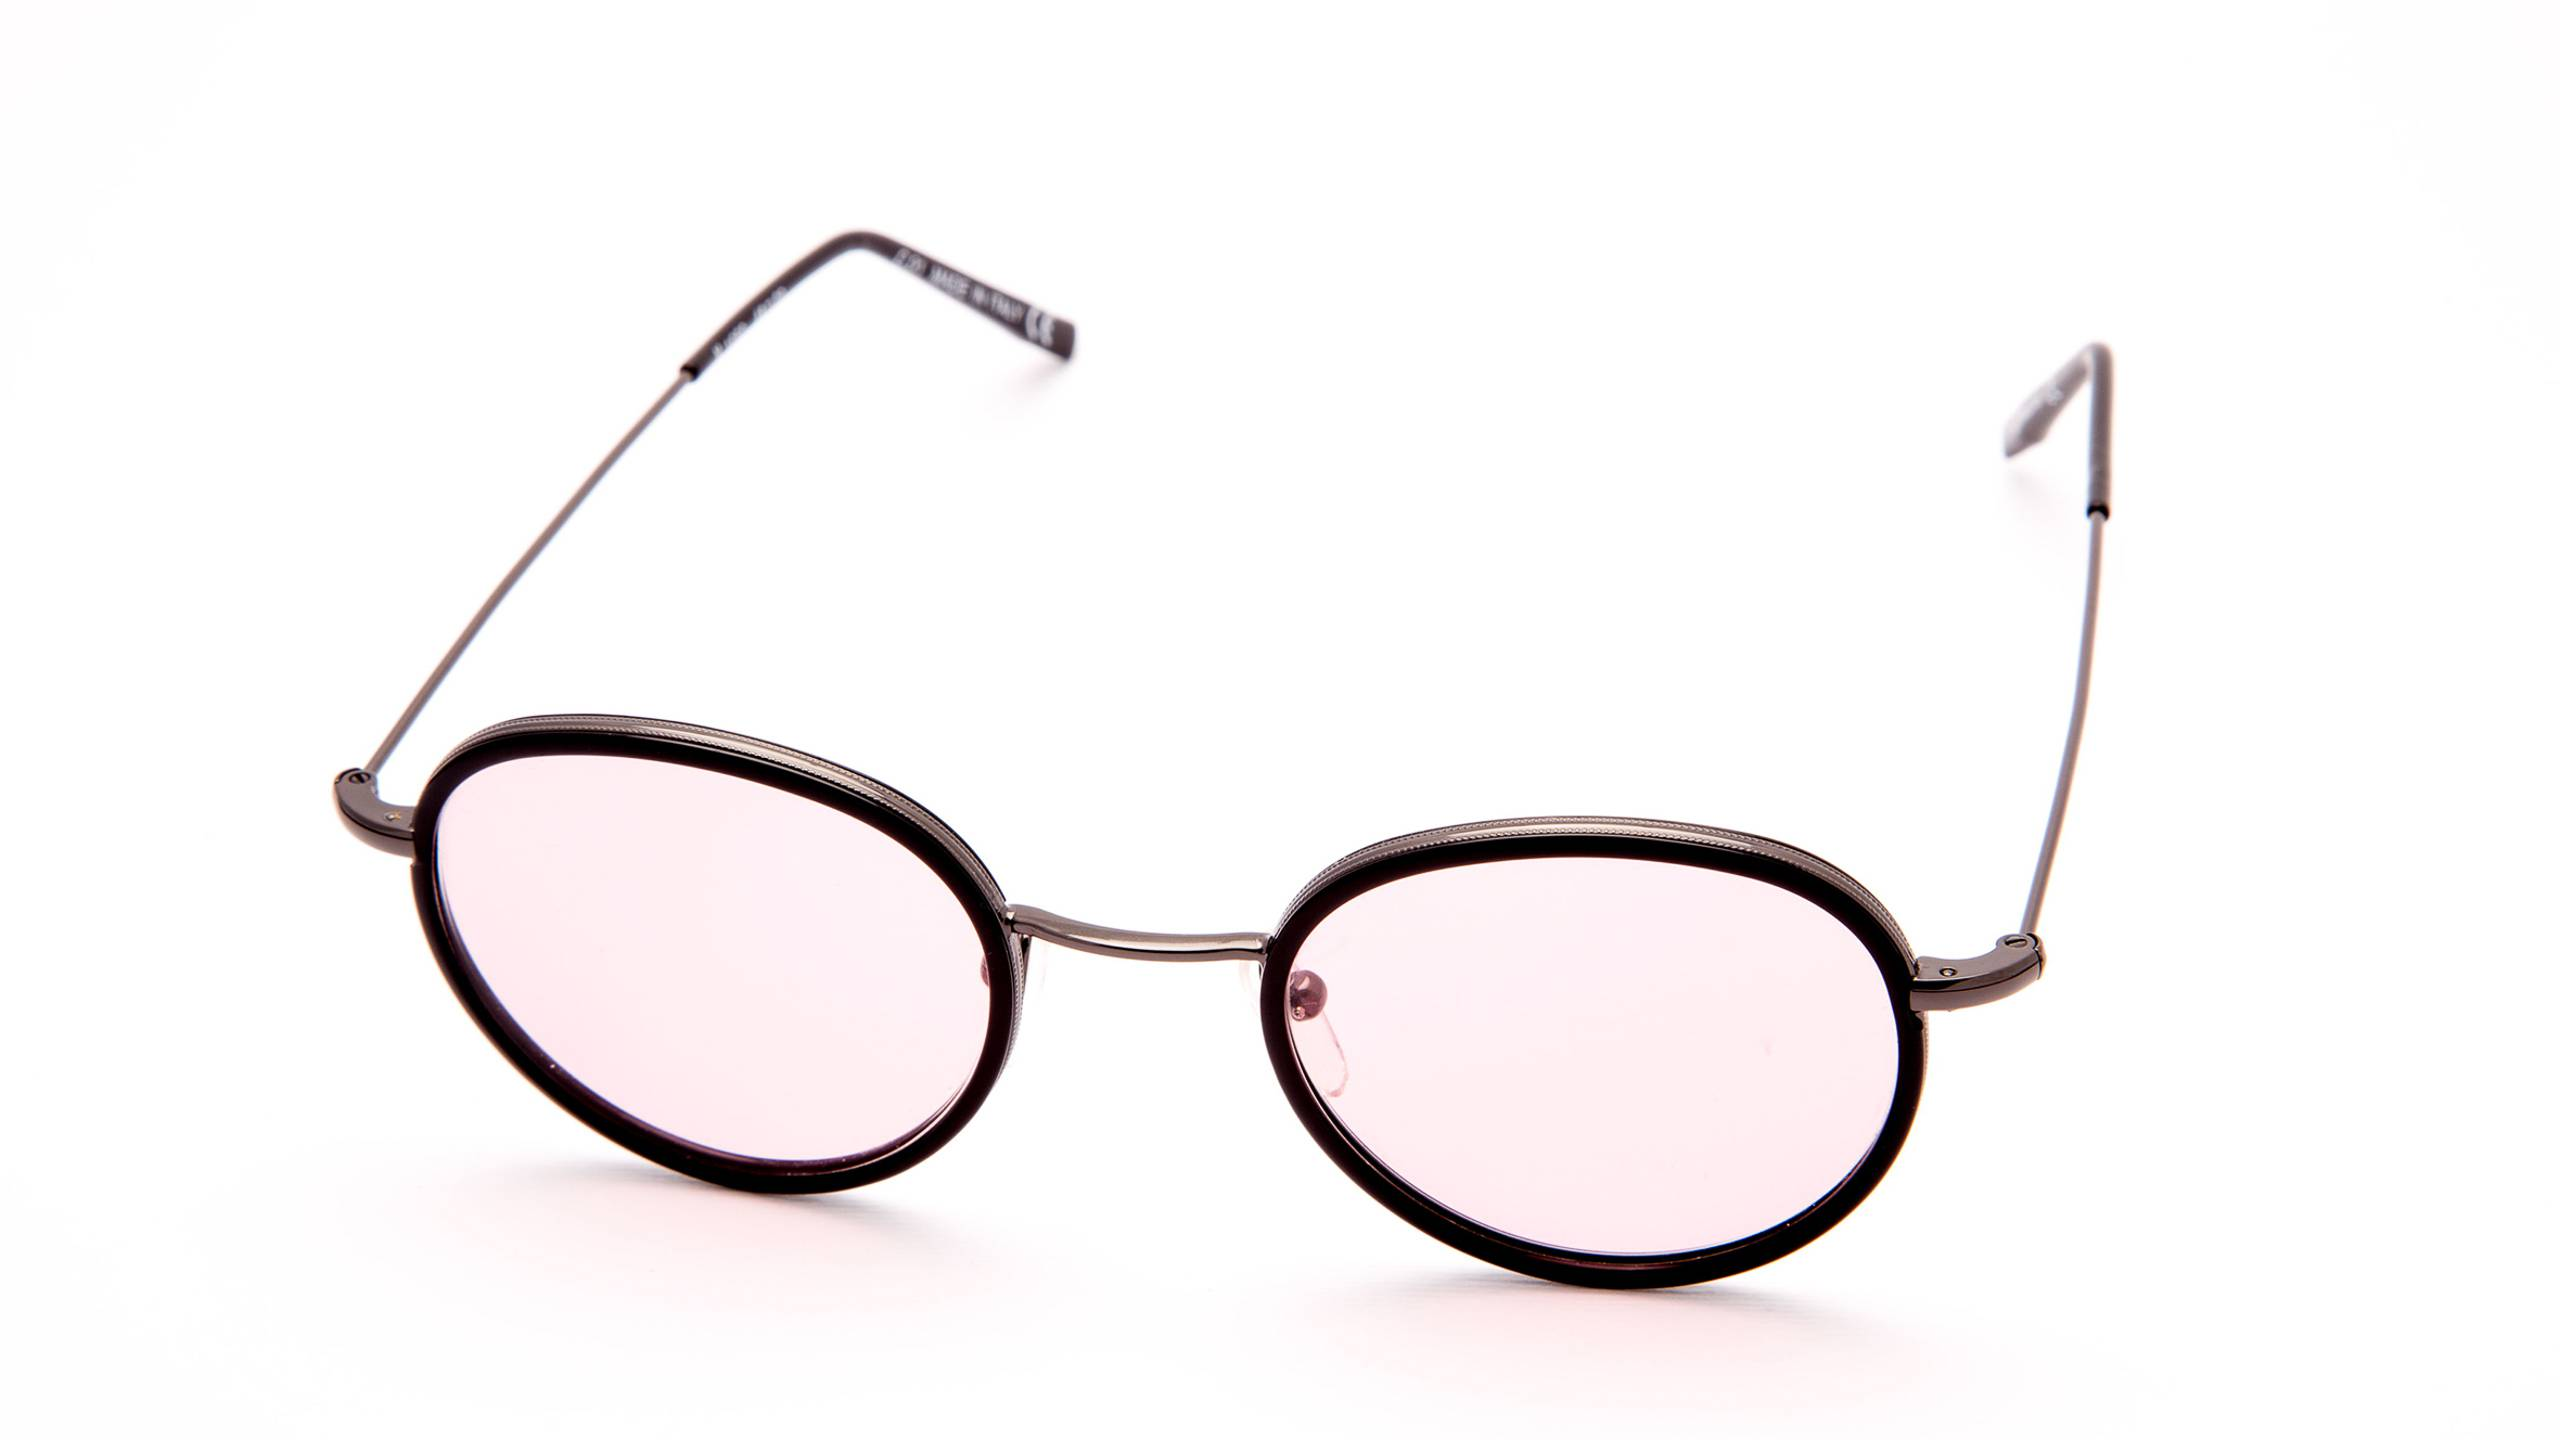 eyeglasses-Nathan-Kaltermann-made-in-Italy-ANDY-COL-2